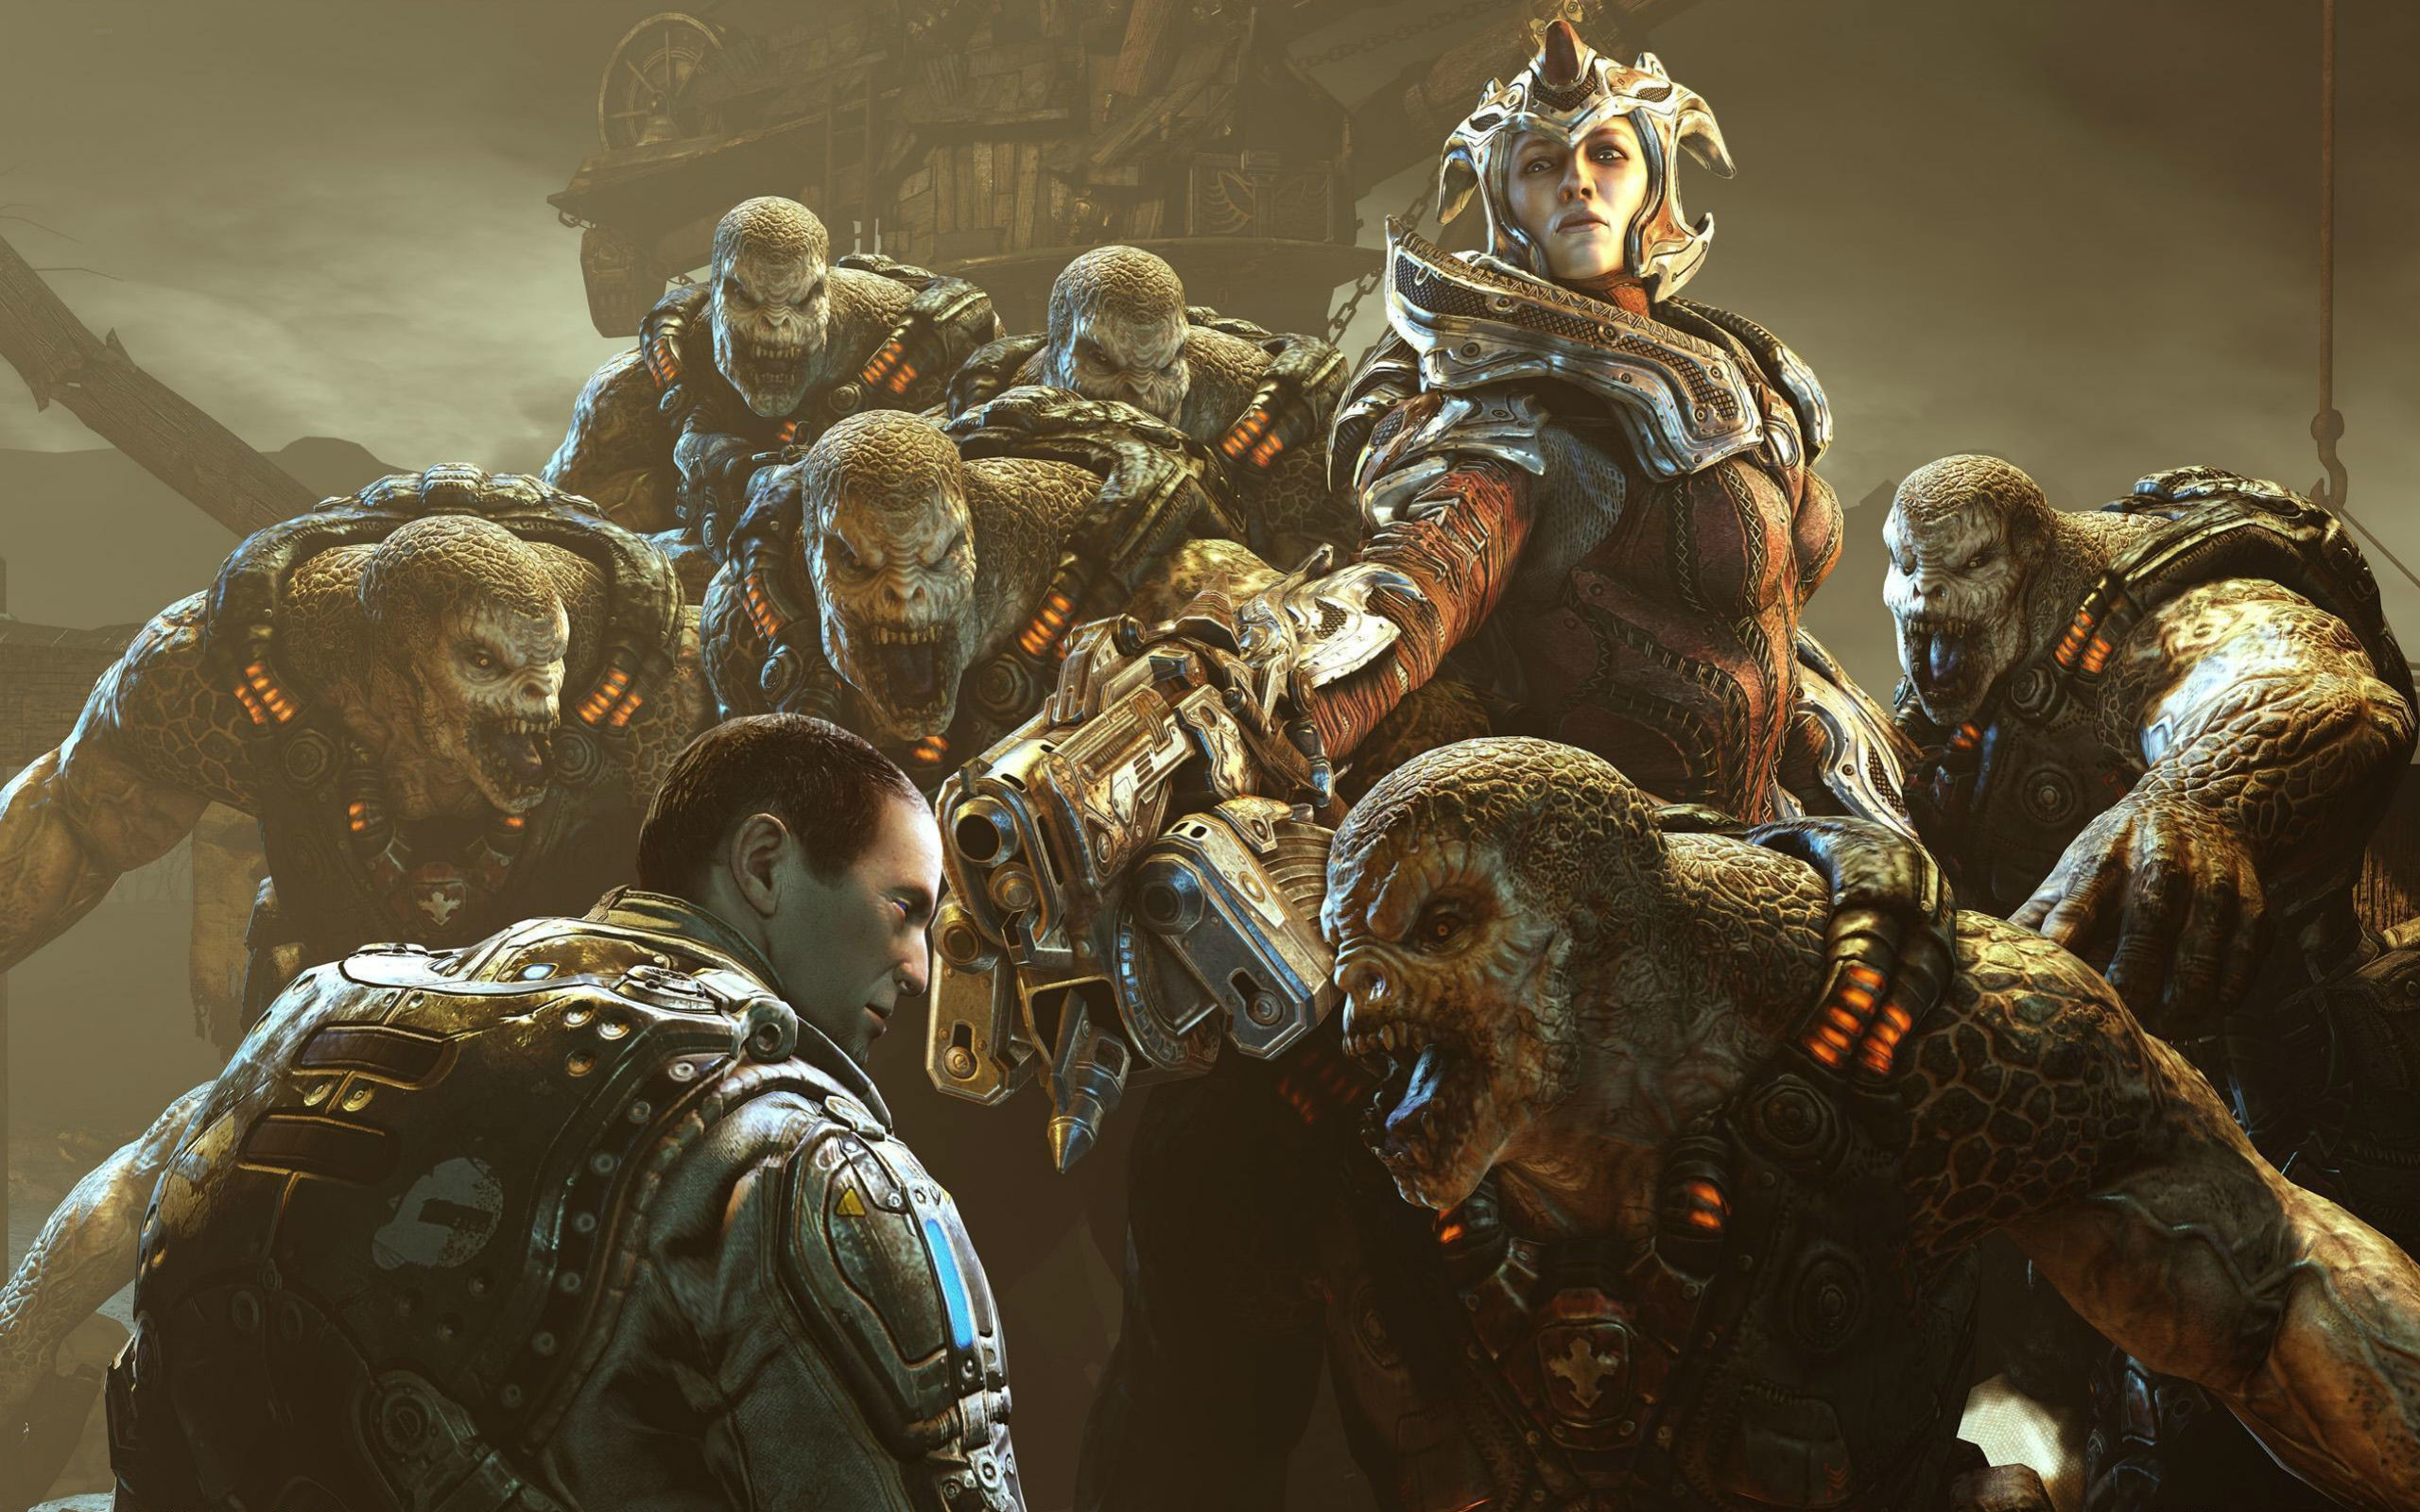 Gears Of War 3 Wallpaper Hd 84 Images